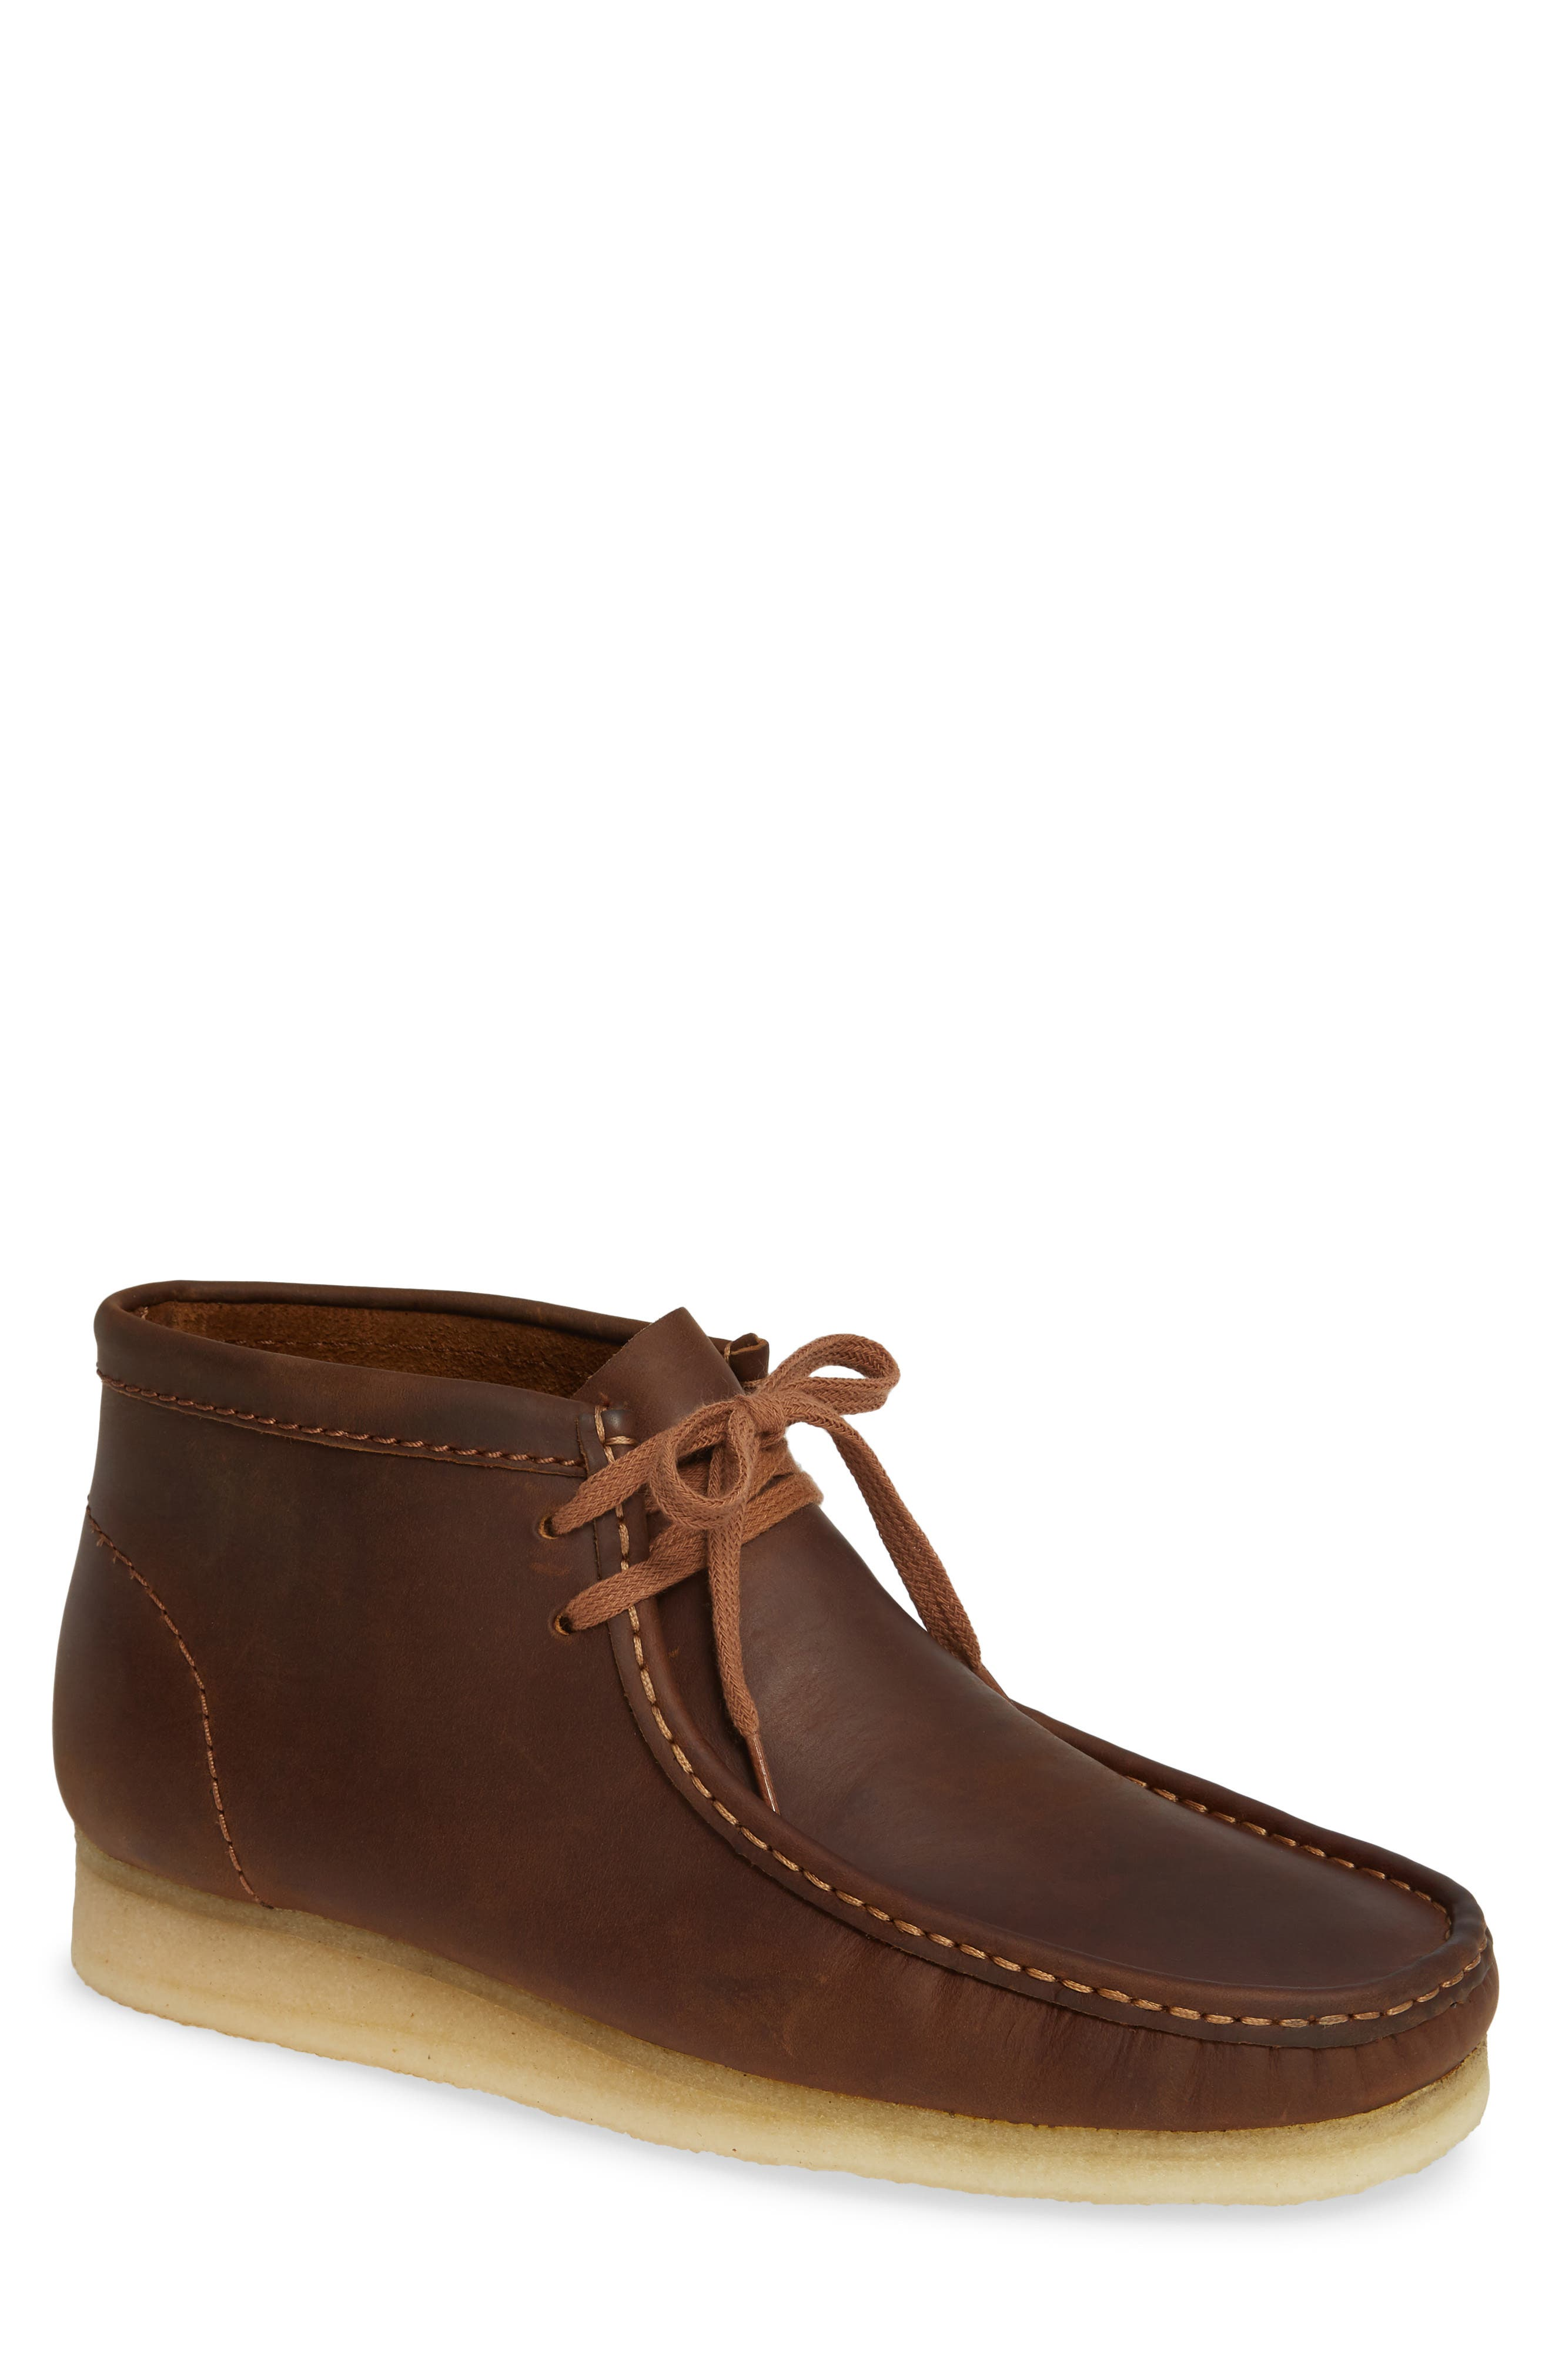 Wallabee Boot,                             Main thumbnail 1, color,                             BROWN LEATHER